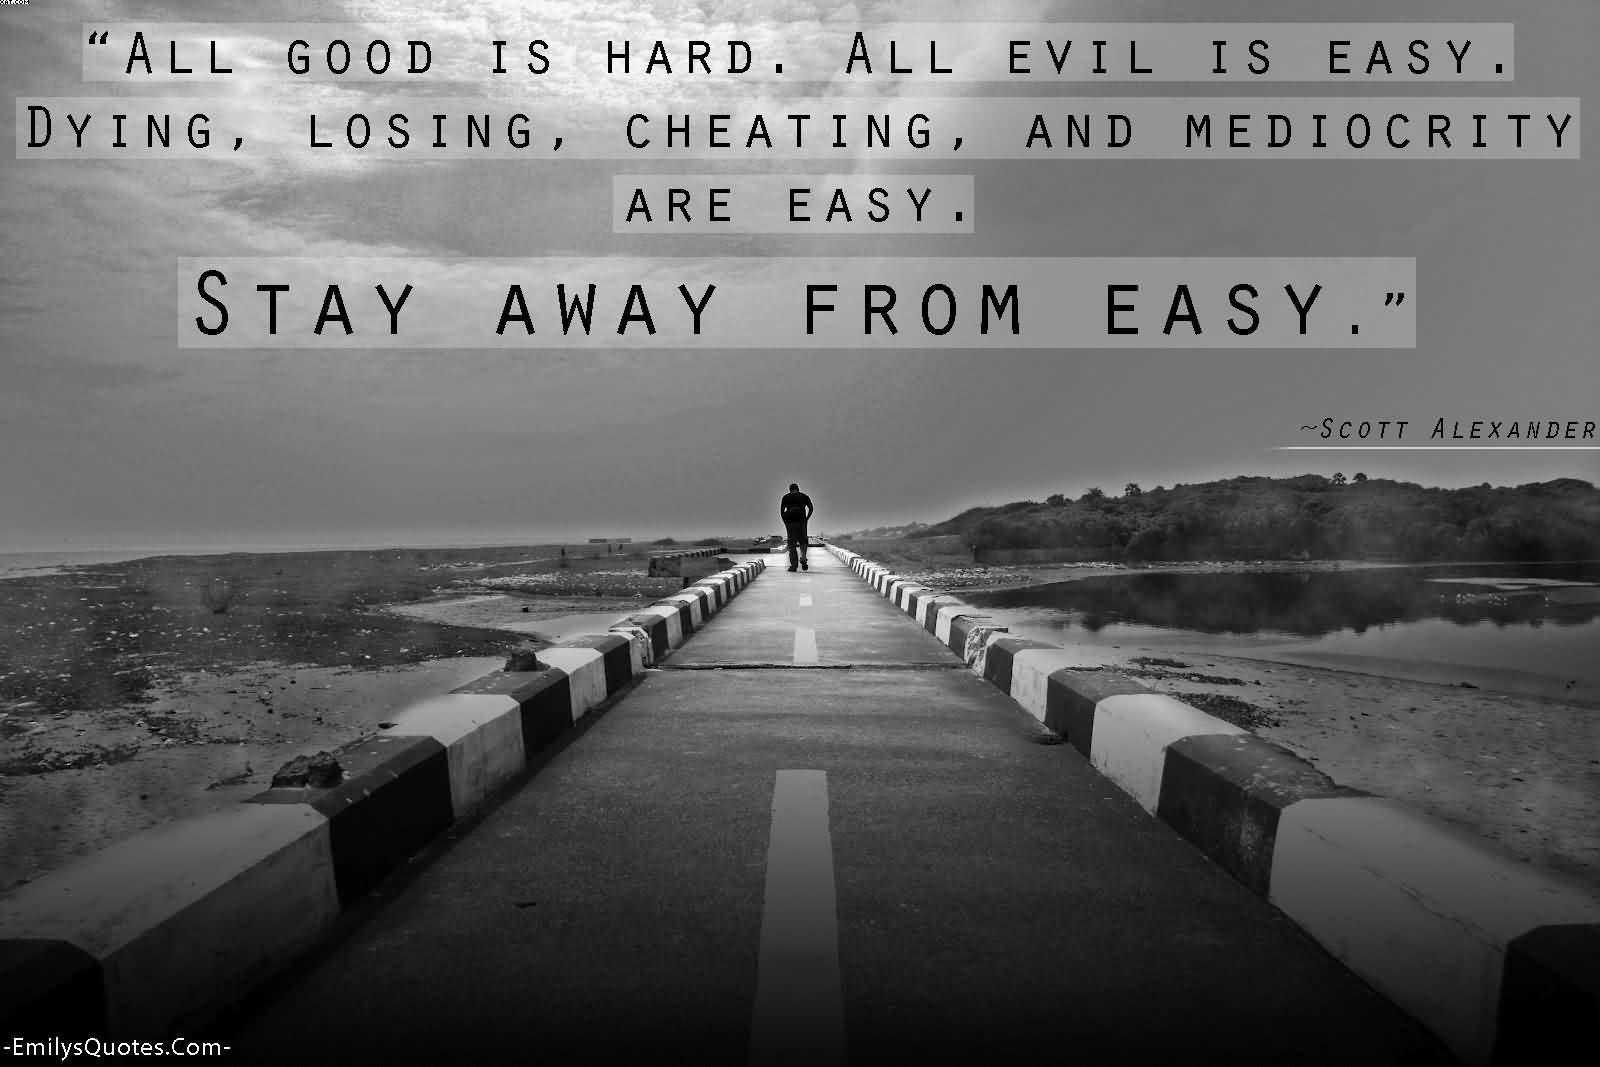 All Good Is HArd All Evil Is Easy. Dying, Lsoing, Cheating and Character Are Easy. Stay Away From Easy.